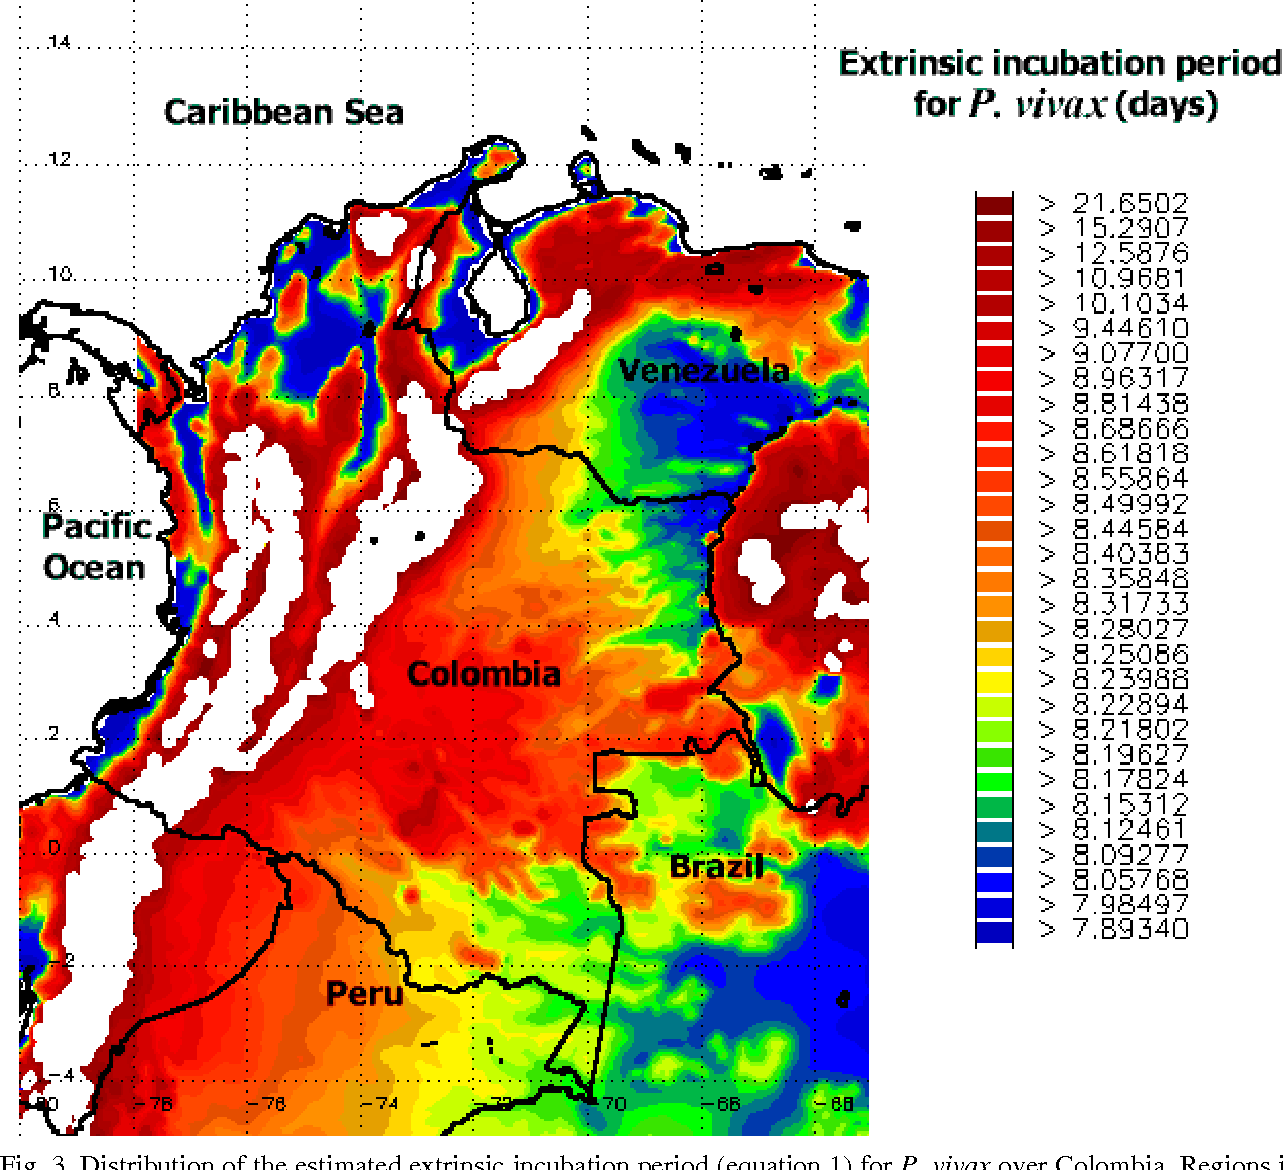 Figure 3 from El Niño and the Southern Oscillation: Climate ... on climate map of americas, climate map of saint lucia, climate map of bahamas, climate map of the world, climate map of trinidad and tobago, climate map of vanuatu, climate map of netherlands, climate map of malaysia, climate map of united arab emirates, climate map of malawi, climate map of burundi, climate map of togo, climate map of lesotho, climate map of guinea, climate map of slovenia, climate map of andes, climate map of moldova, climate map of qatar, climate map of senegal, climate map of lebanon,